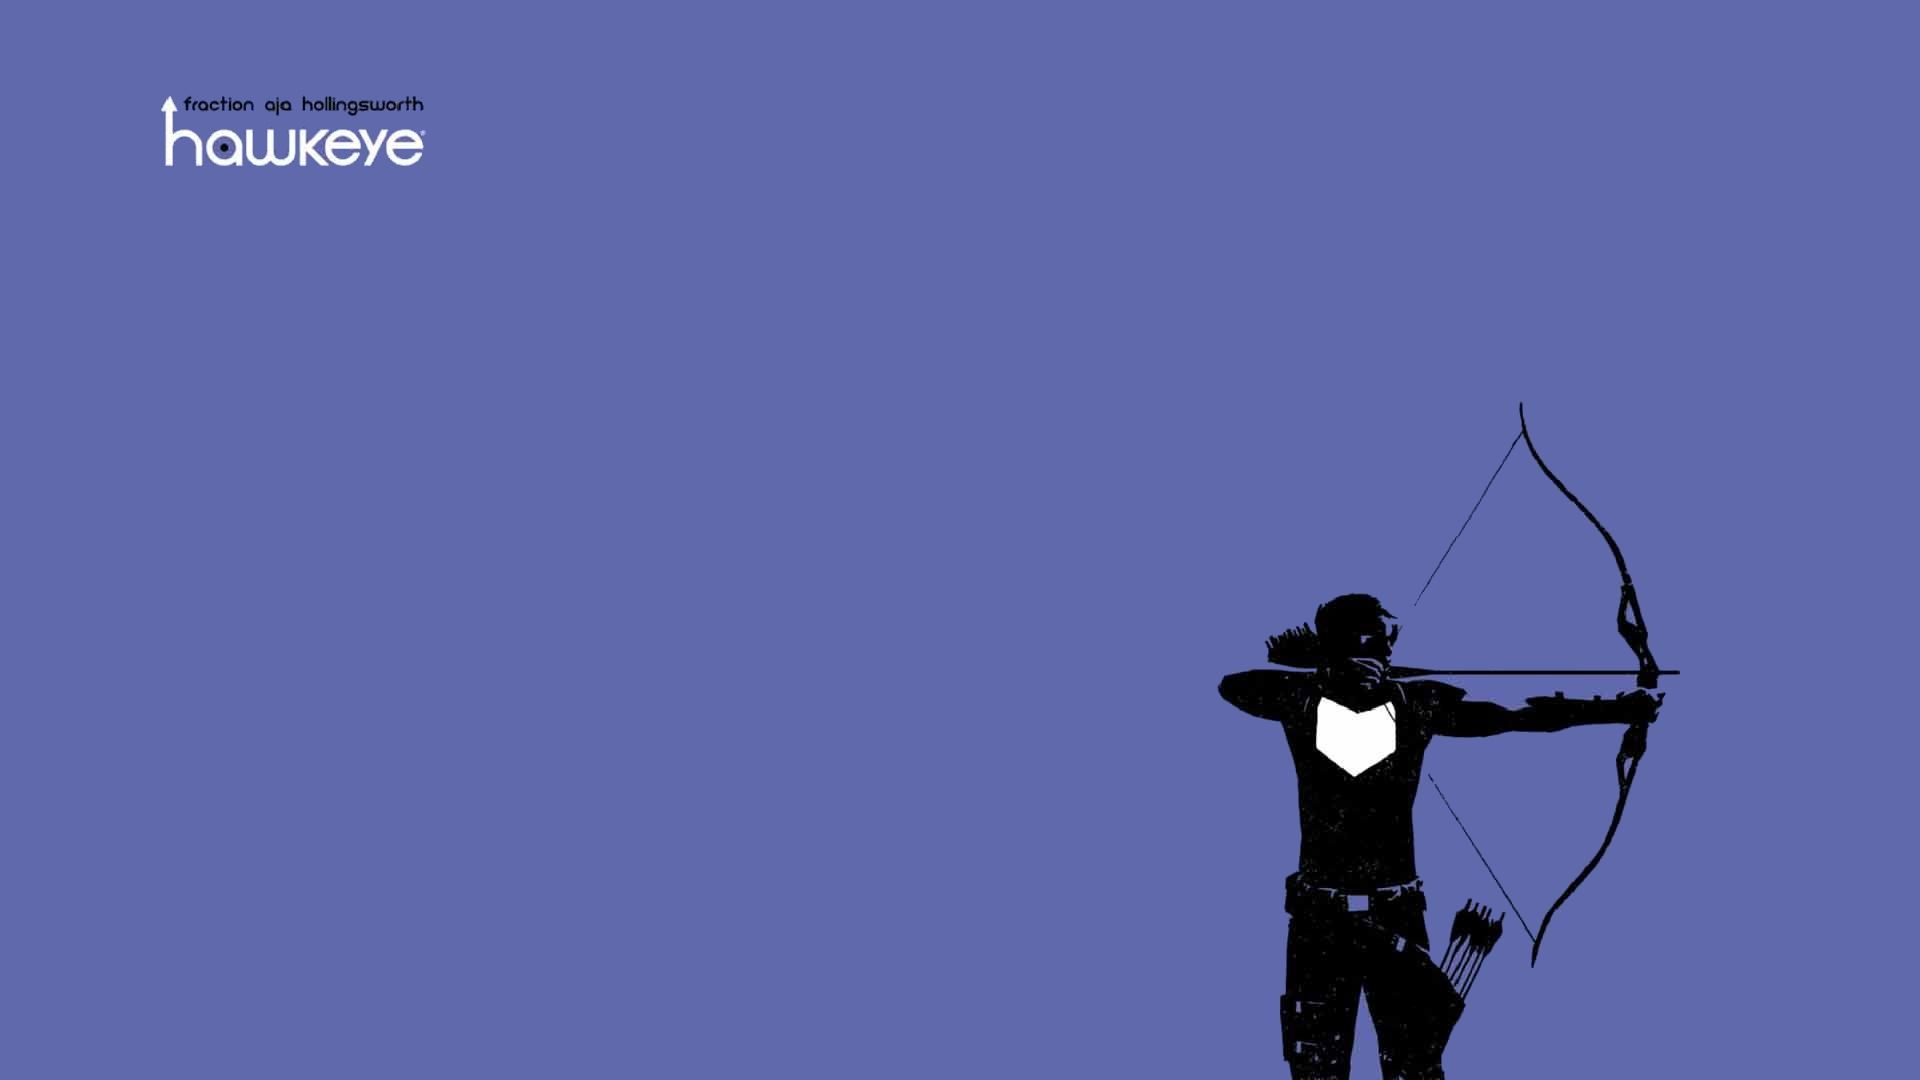 1920x1080 Hawkeye Wallpapers – WeNeedFun